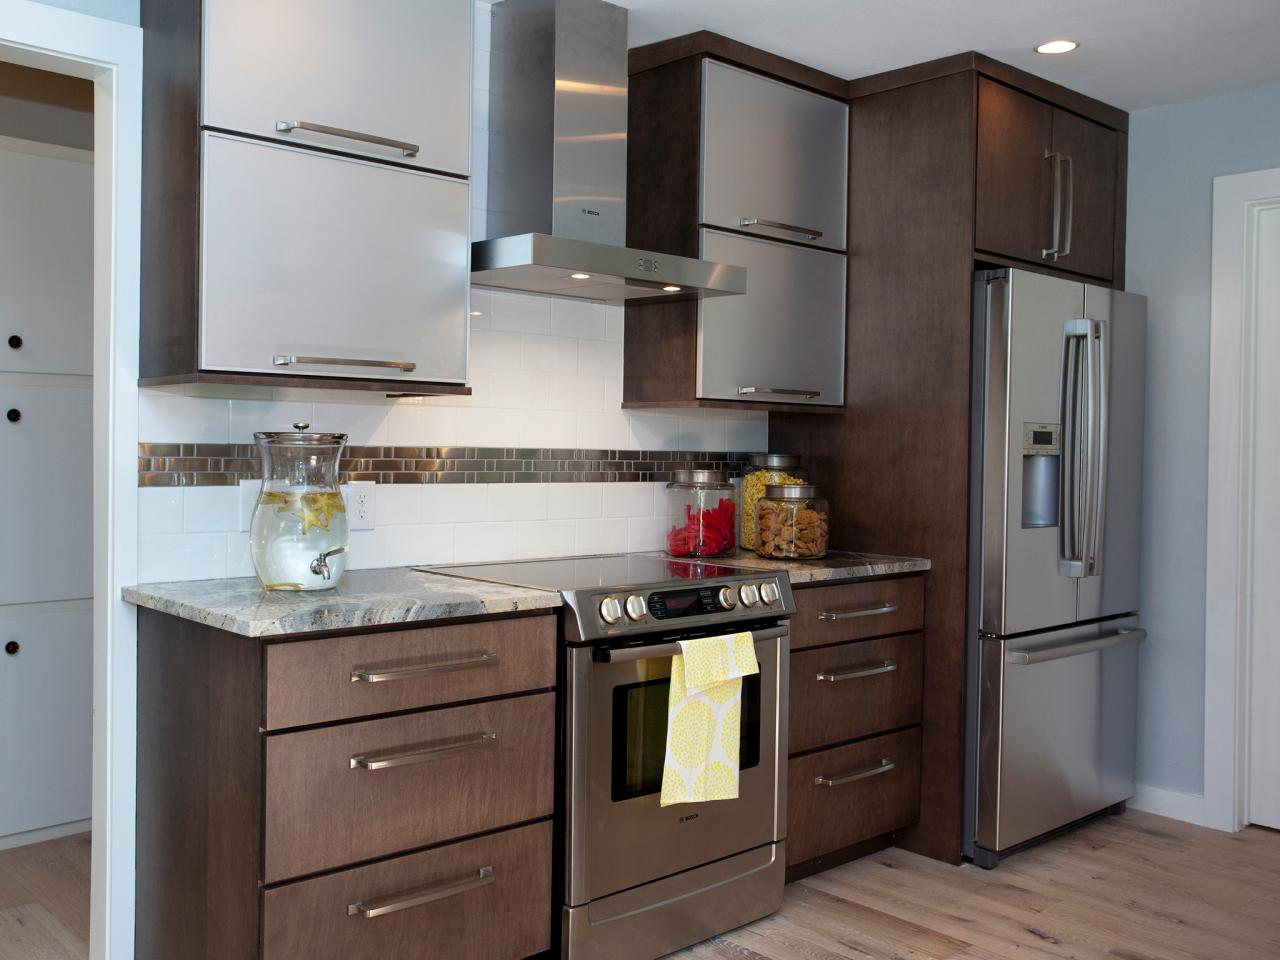 cool design of the stainless steel kitchen cabinets with brown rh cransten com Glass Kitchen Cabinet Door Styles Vintage Metal Kitchen Cabinet